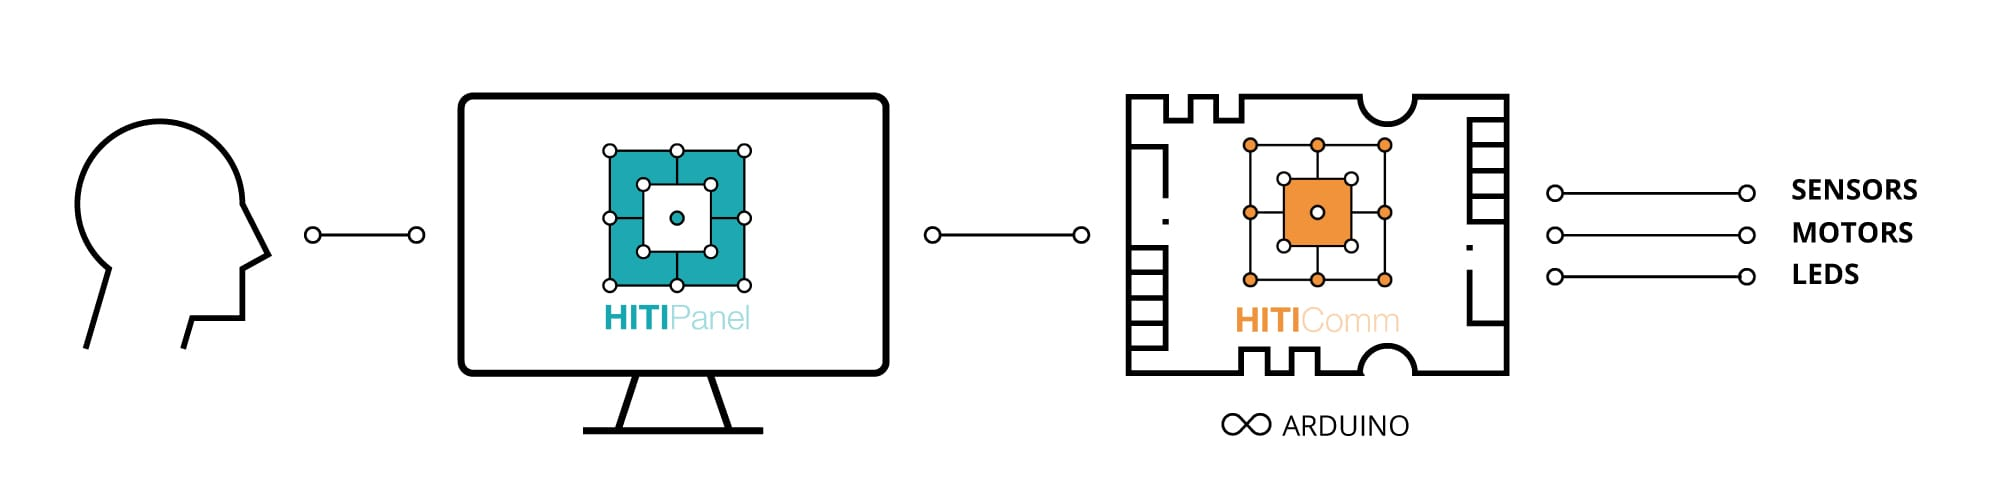 HITIPanel - Arduino serial connection